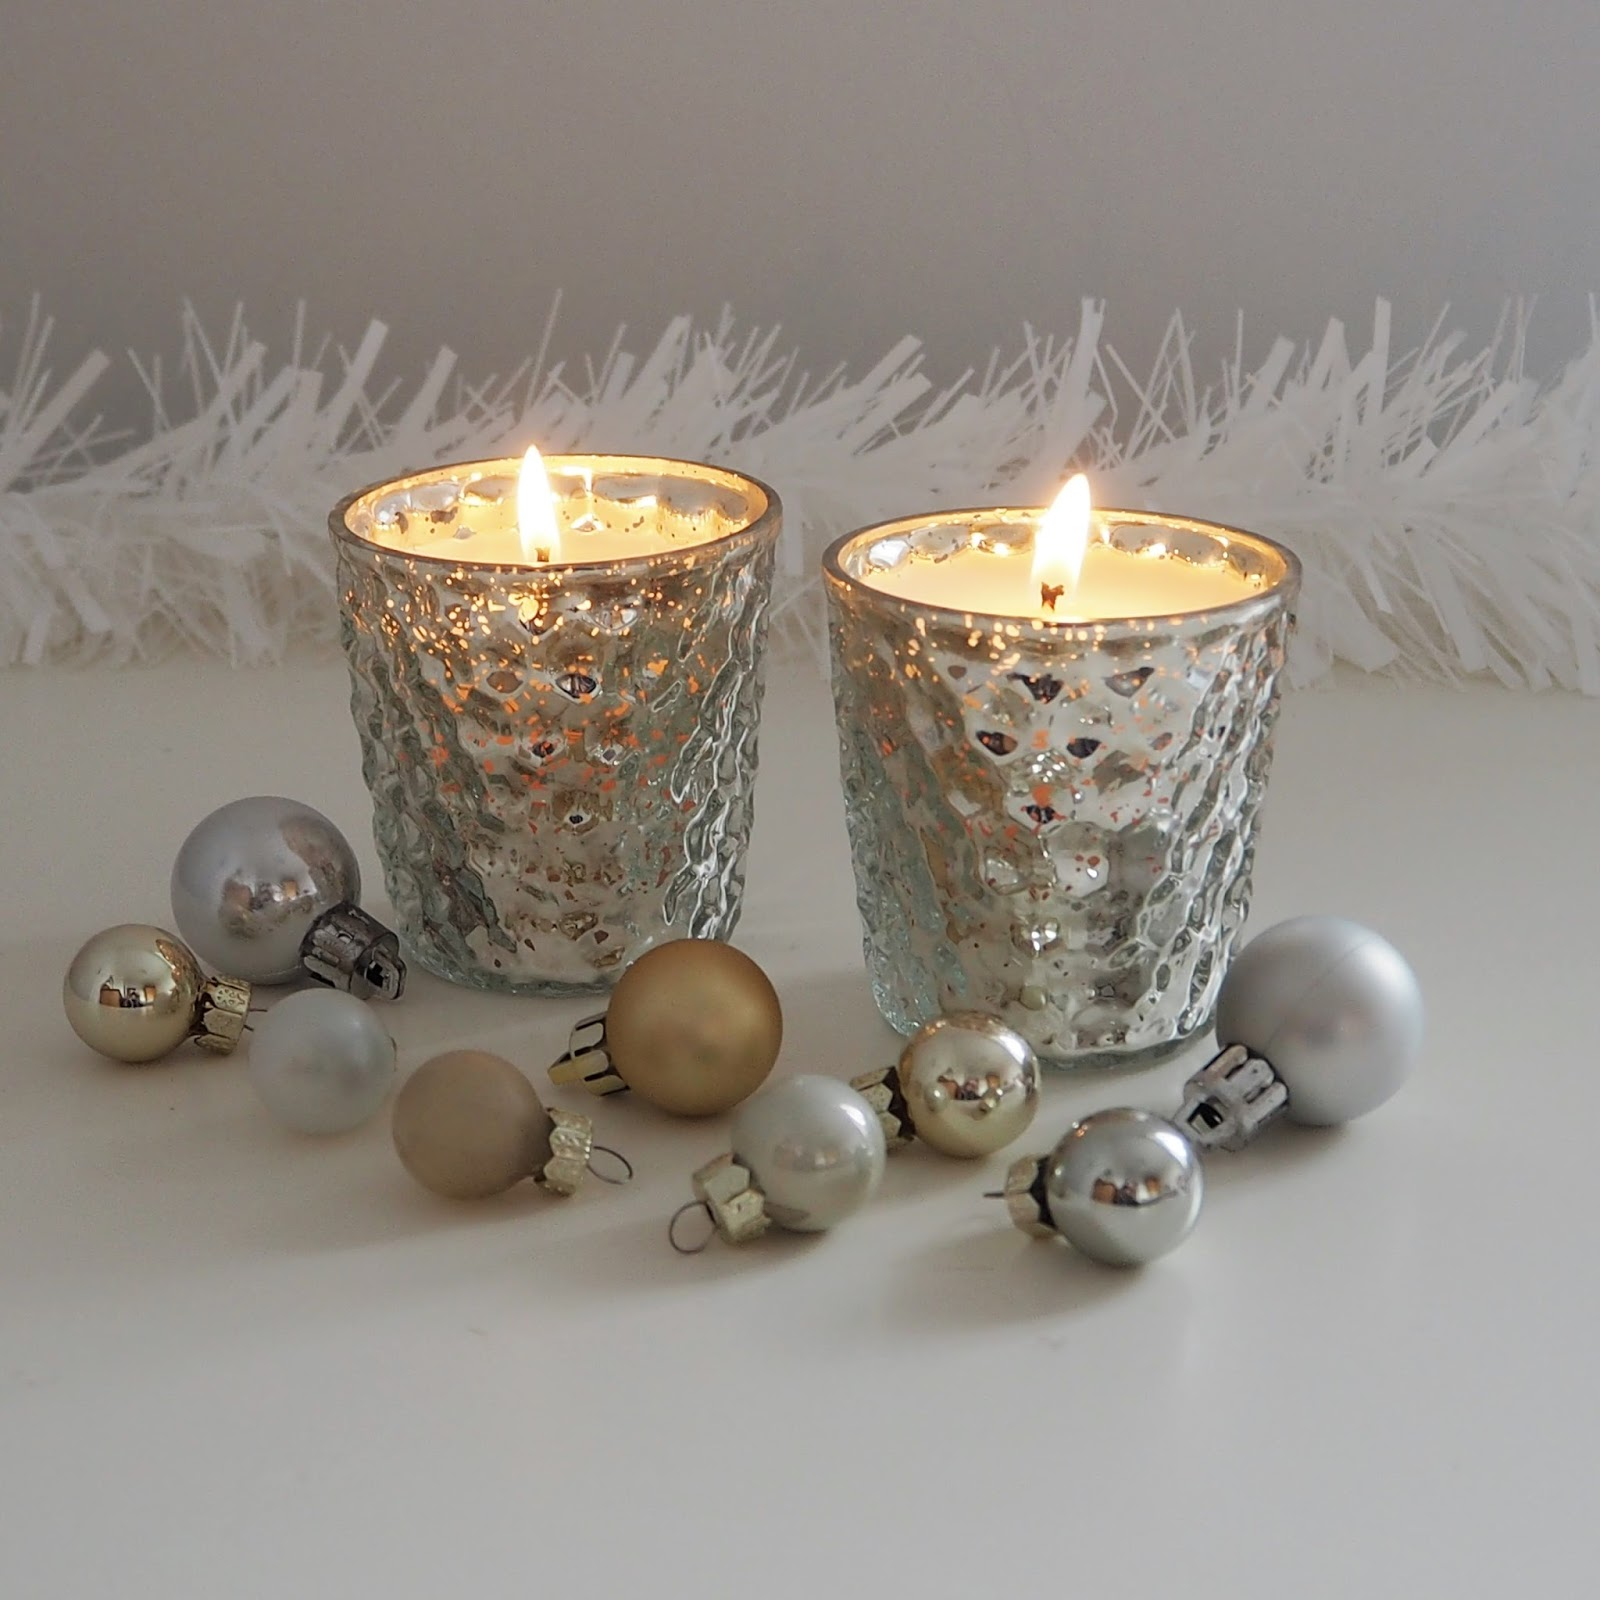 The White Company Winter candles in mercurised silver glass votives